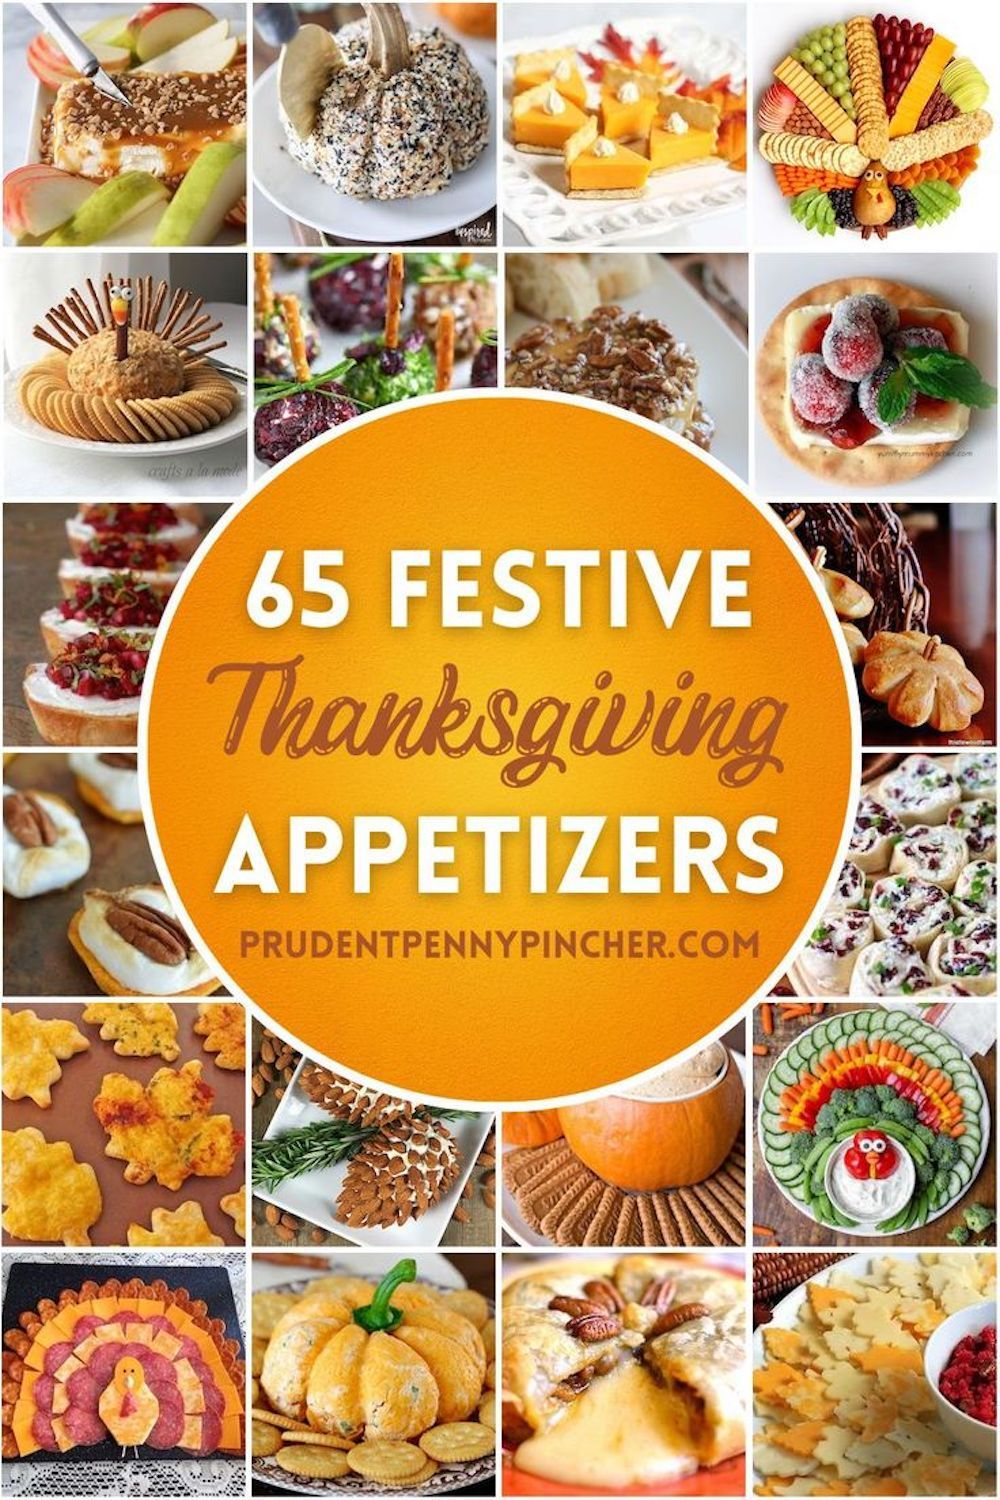 65 Festive Thanksgiving Appetizers In 2020 Thanksgiving Appetizers Thanksgiving Dinner Recipes Easy Thanksgiving Recipes